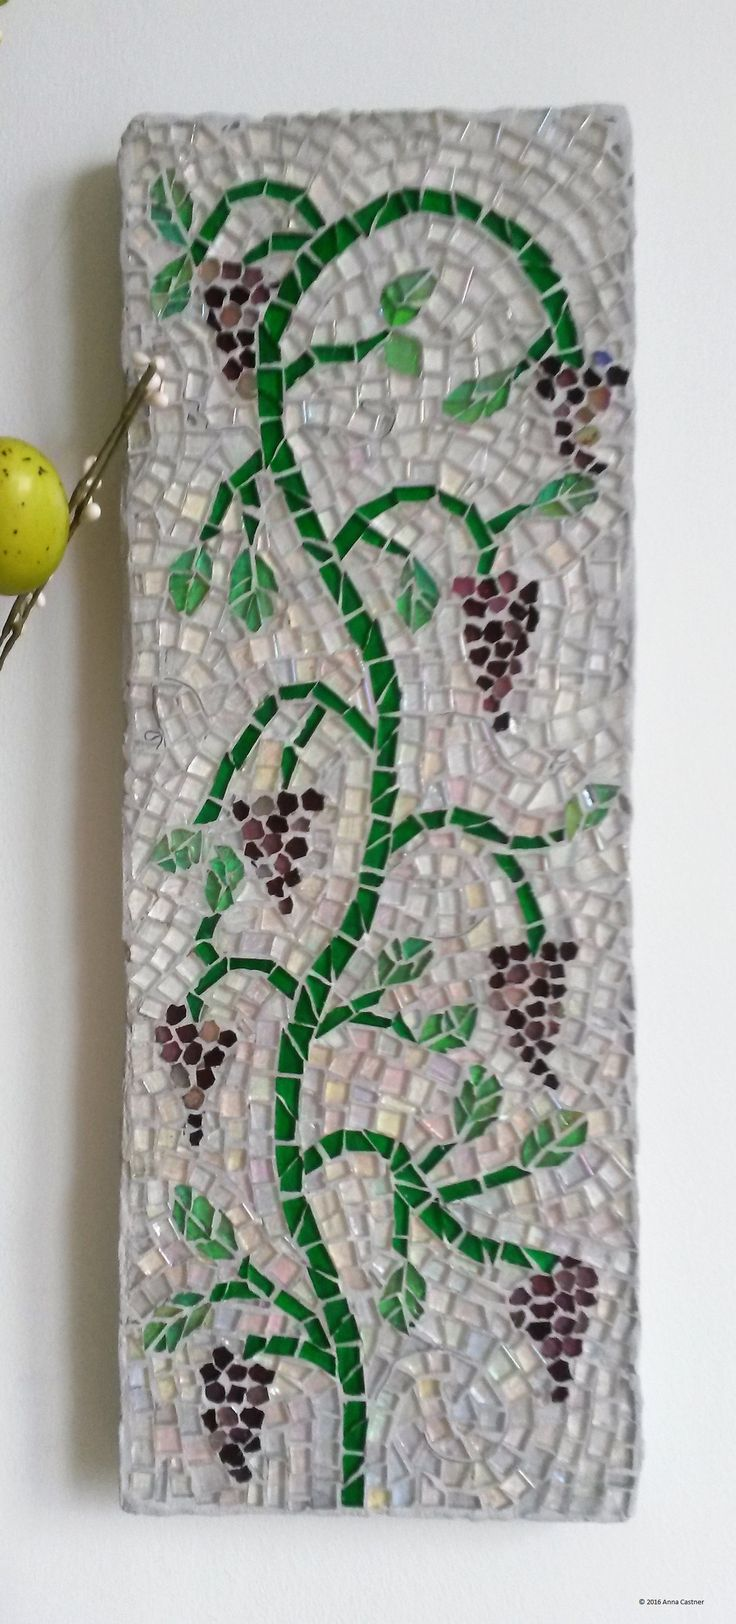 Sold custom made butterfly mosaic table top for mary ann in texas -  Vines 1 Of A Pair Mosaic Wall Panel Made With Sicis Glass